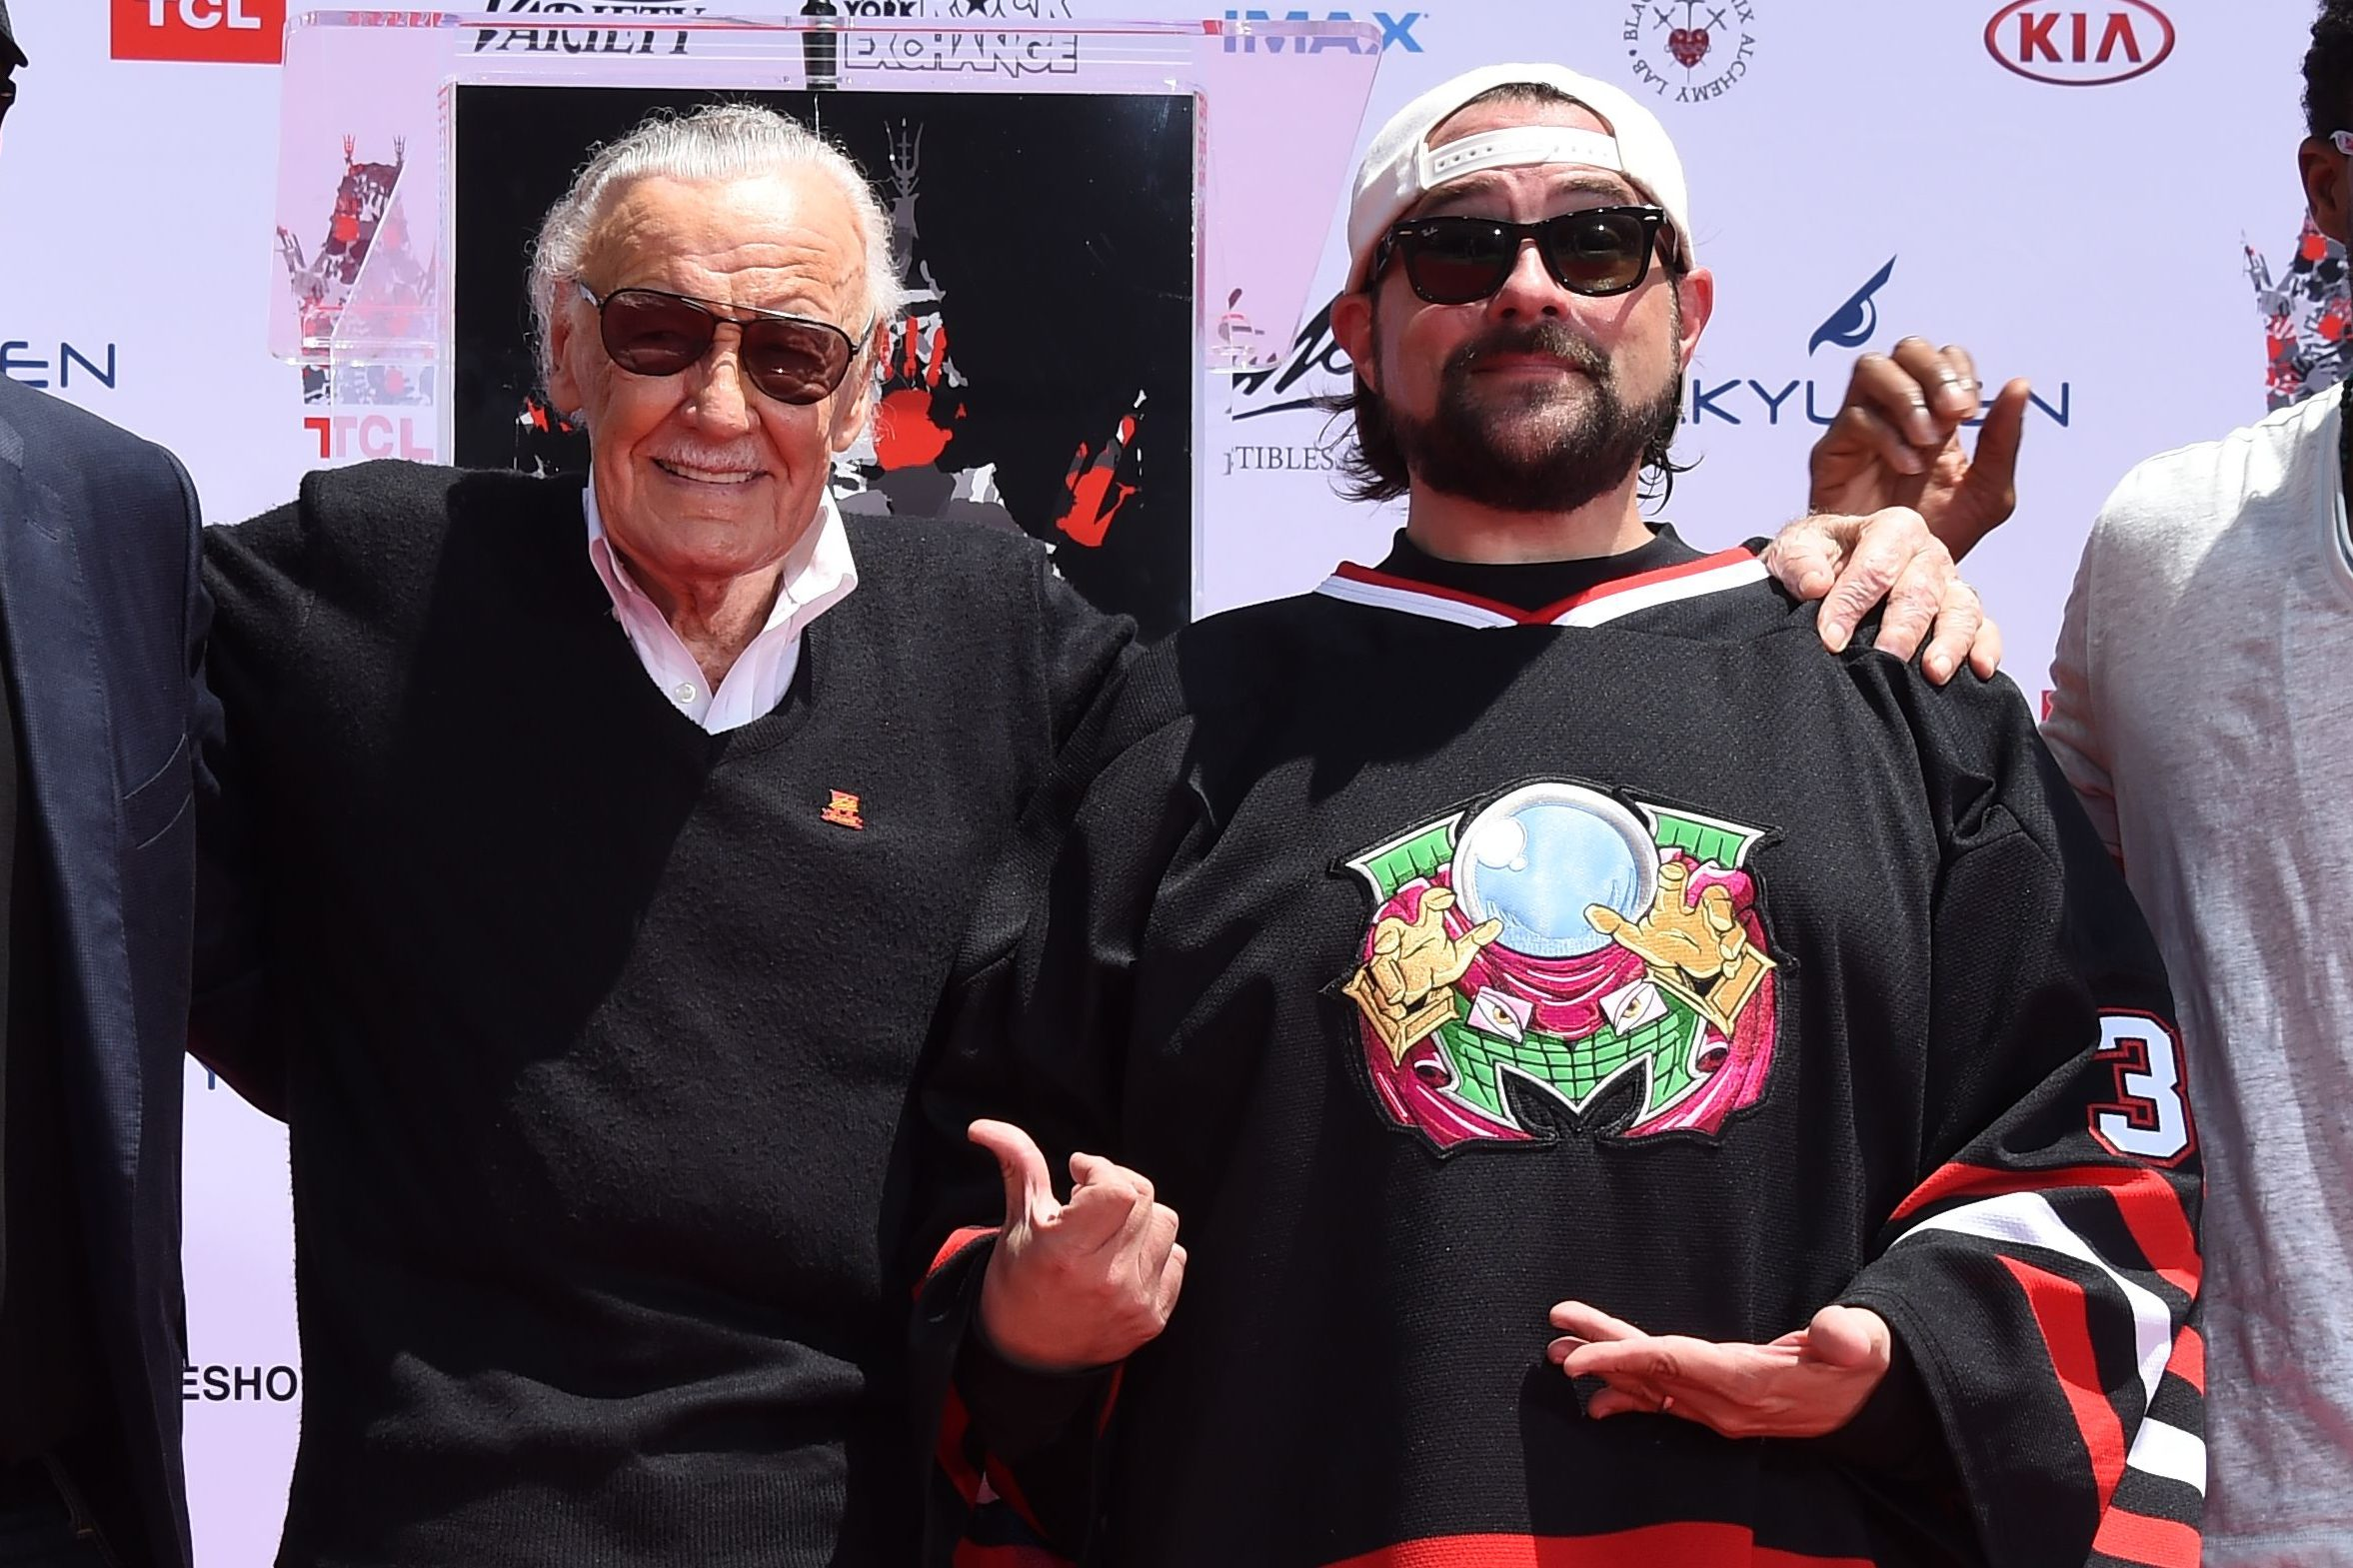 Mandatory Credit: Photo by Jim Smeal/Shutterstock (8965523ba) Todd McFarlane, Kevin Feige, Kevin Smith, Stan Lee and Chadwick Boseman Stan Lee hand and footprint ceremony, Los Angeles, USA - 18 Jul 2017